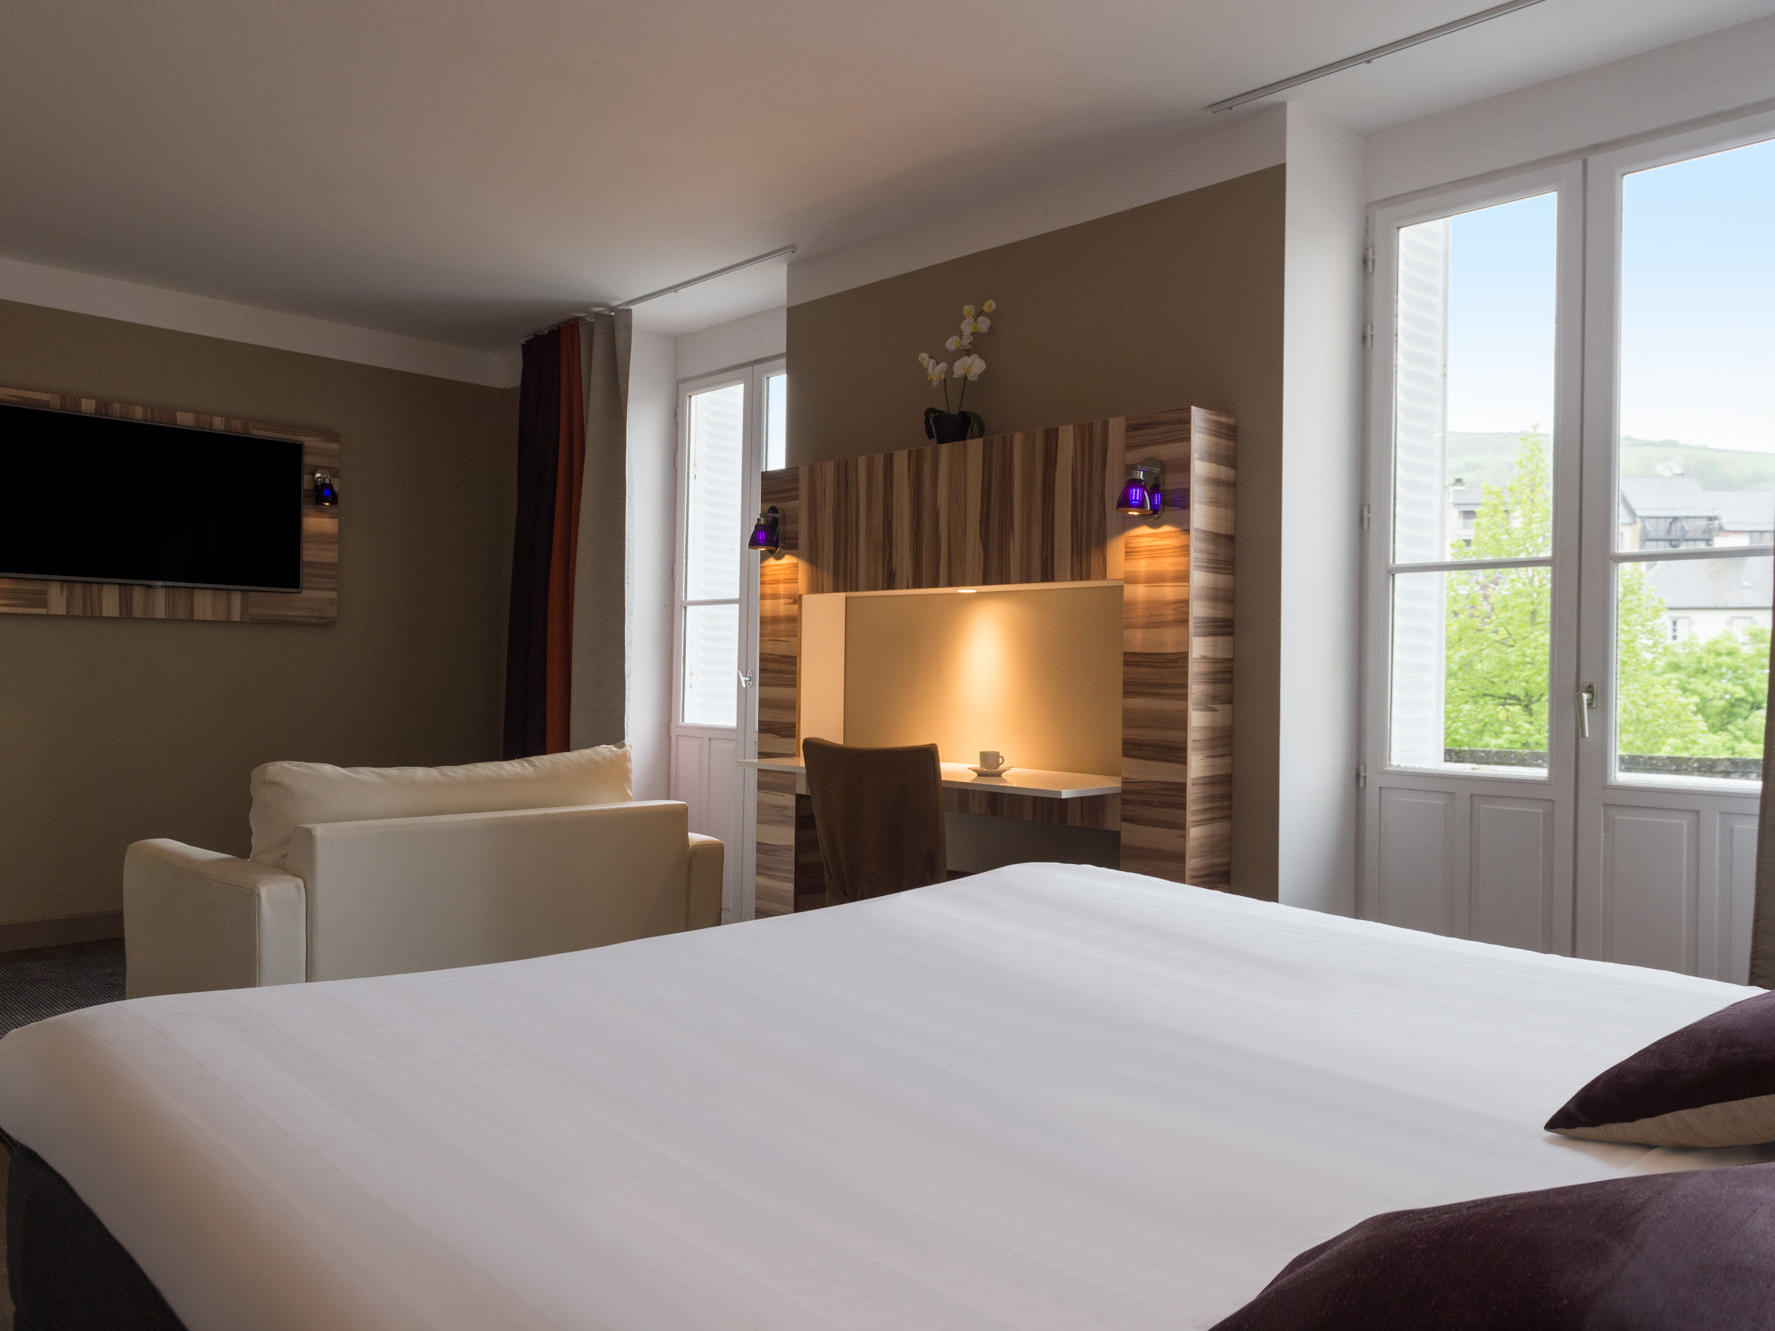 The Privilege Junior Suite at the Grand Hôtel Saint-Pierre with one extra large double bed, one sofa bed and a flat-screen tv